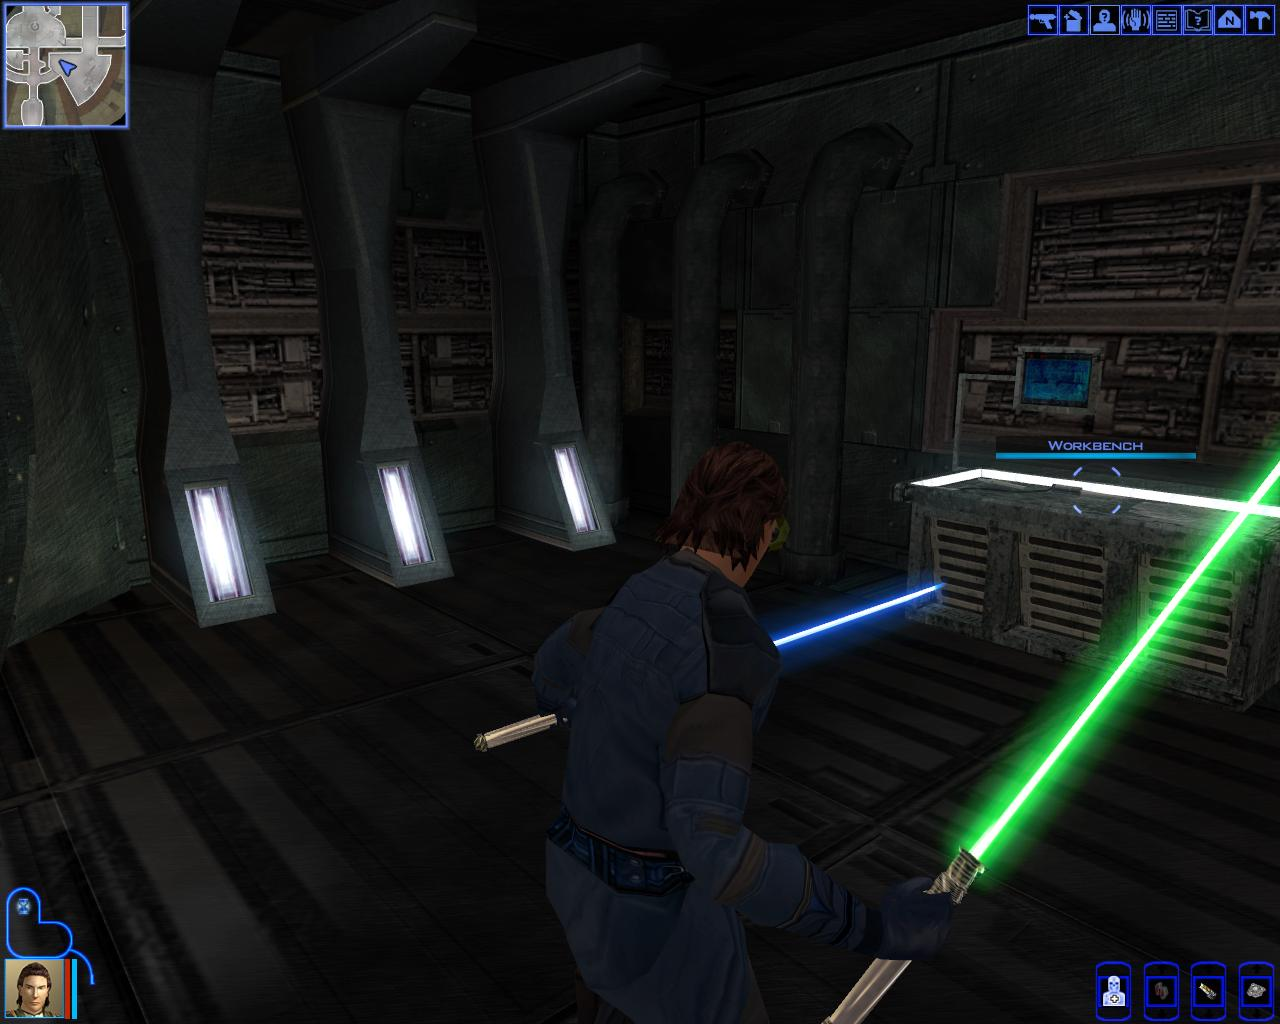 Nude mod for kotor 2 for pc exploited videos